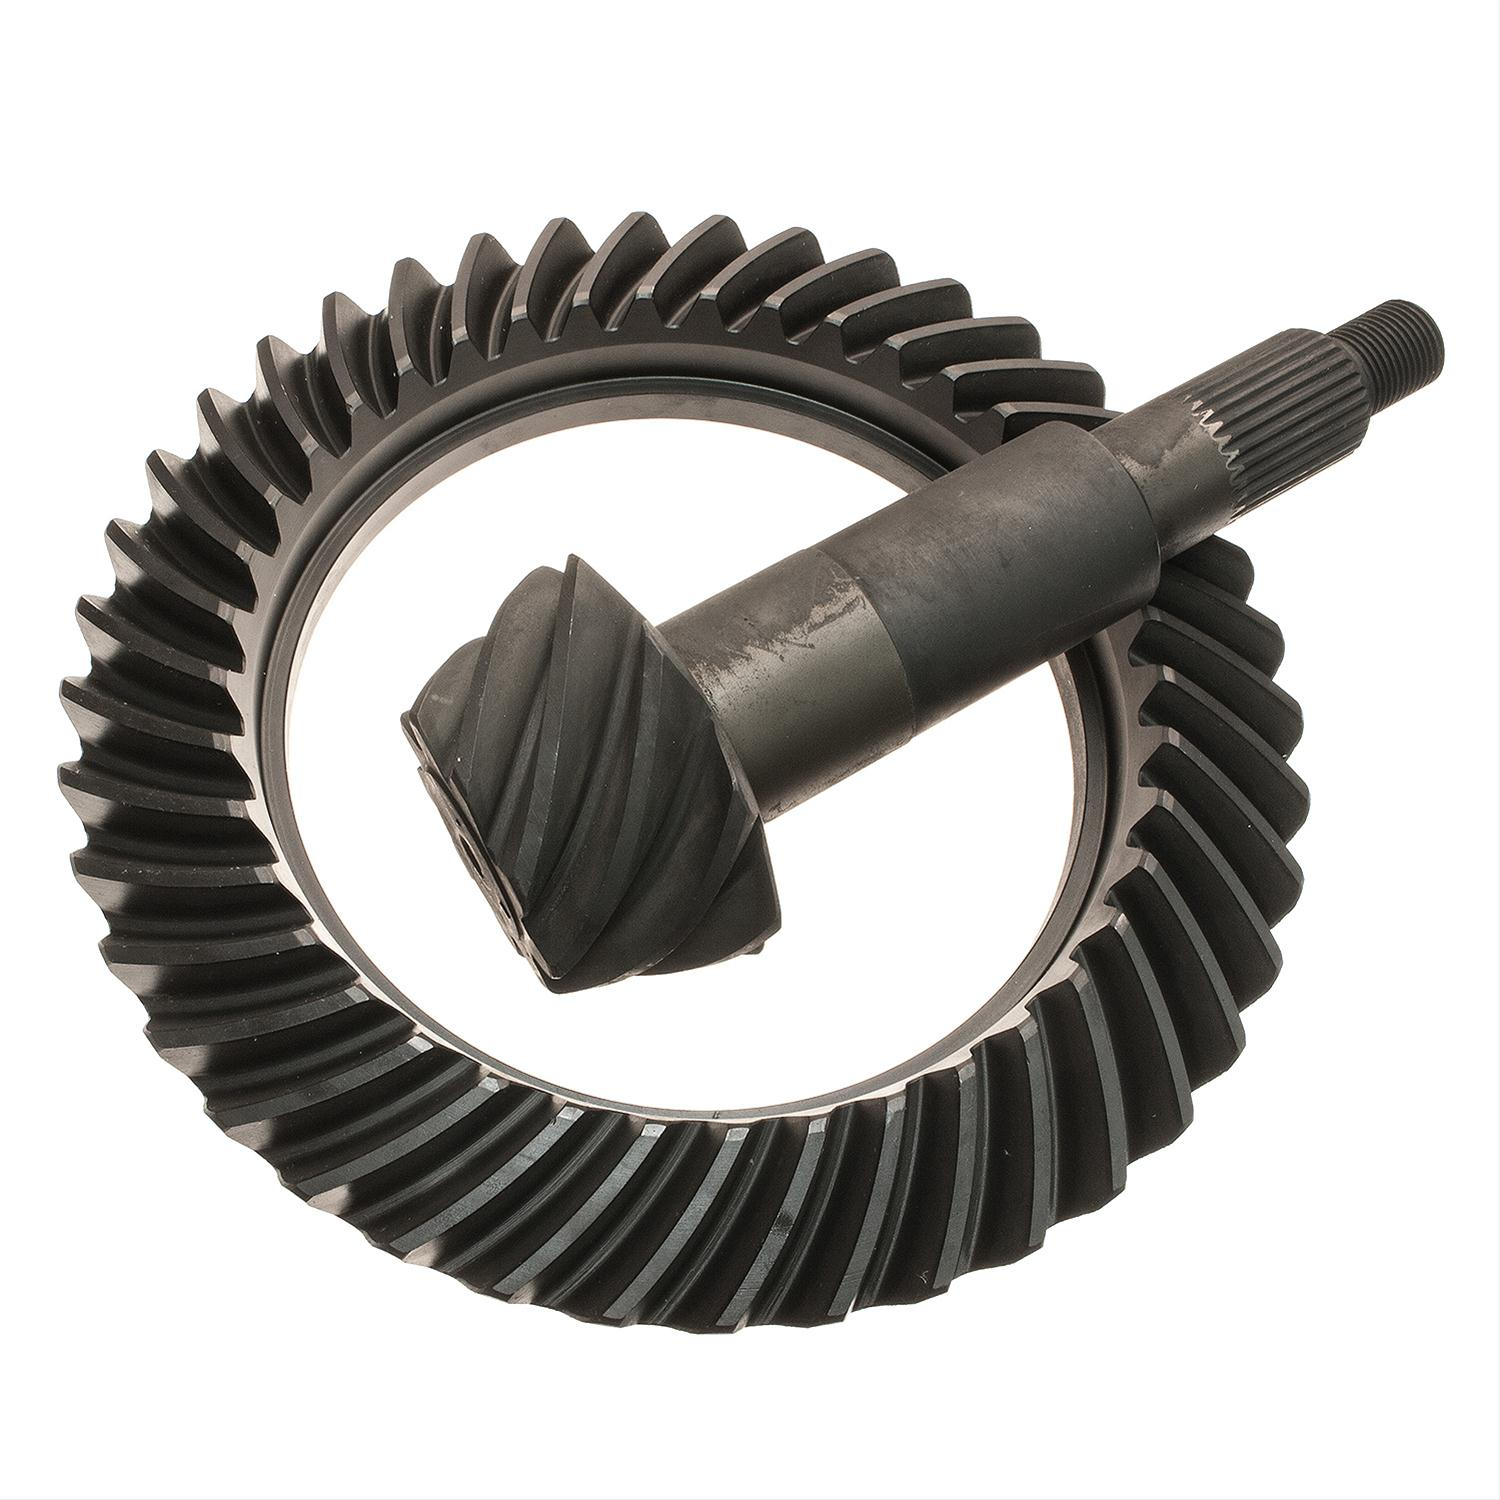 3.54 Ratio SVL 2021406 Differential Ring and Pinion Gear Set for DANA 70